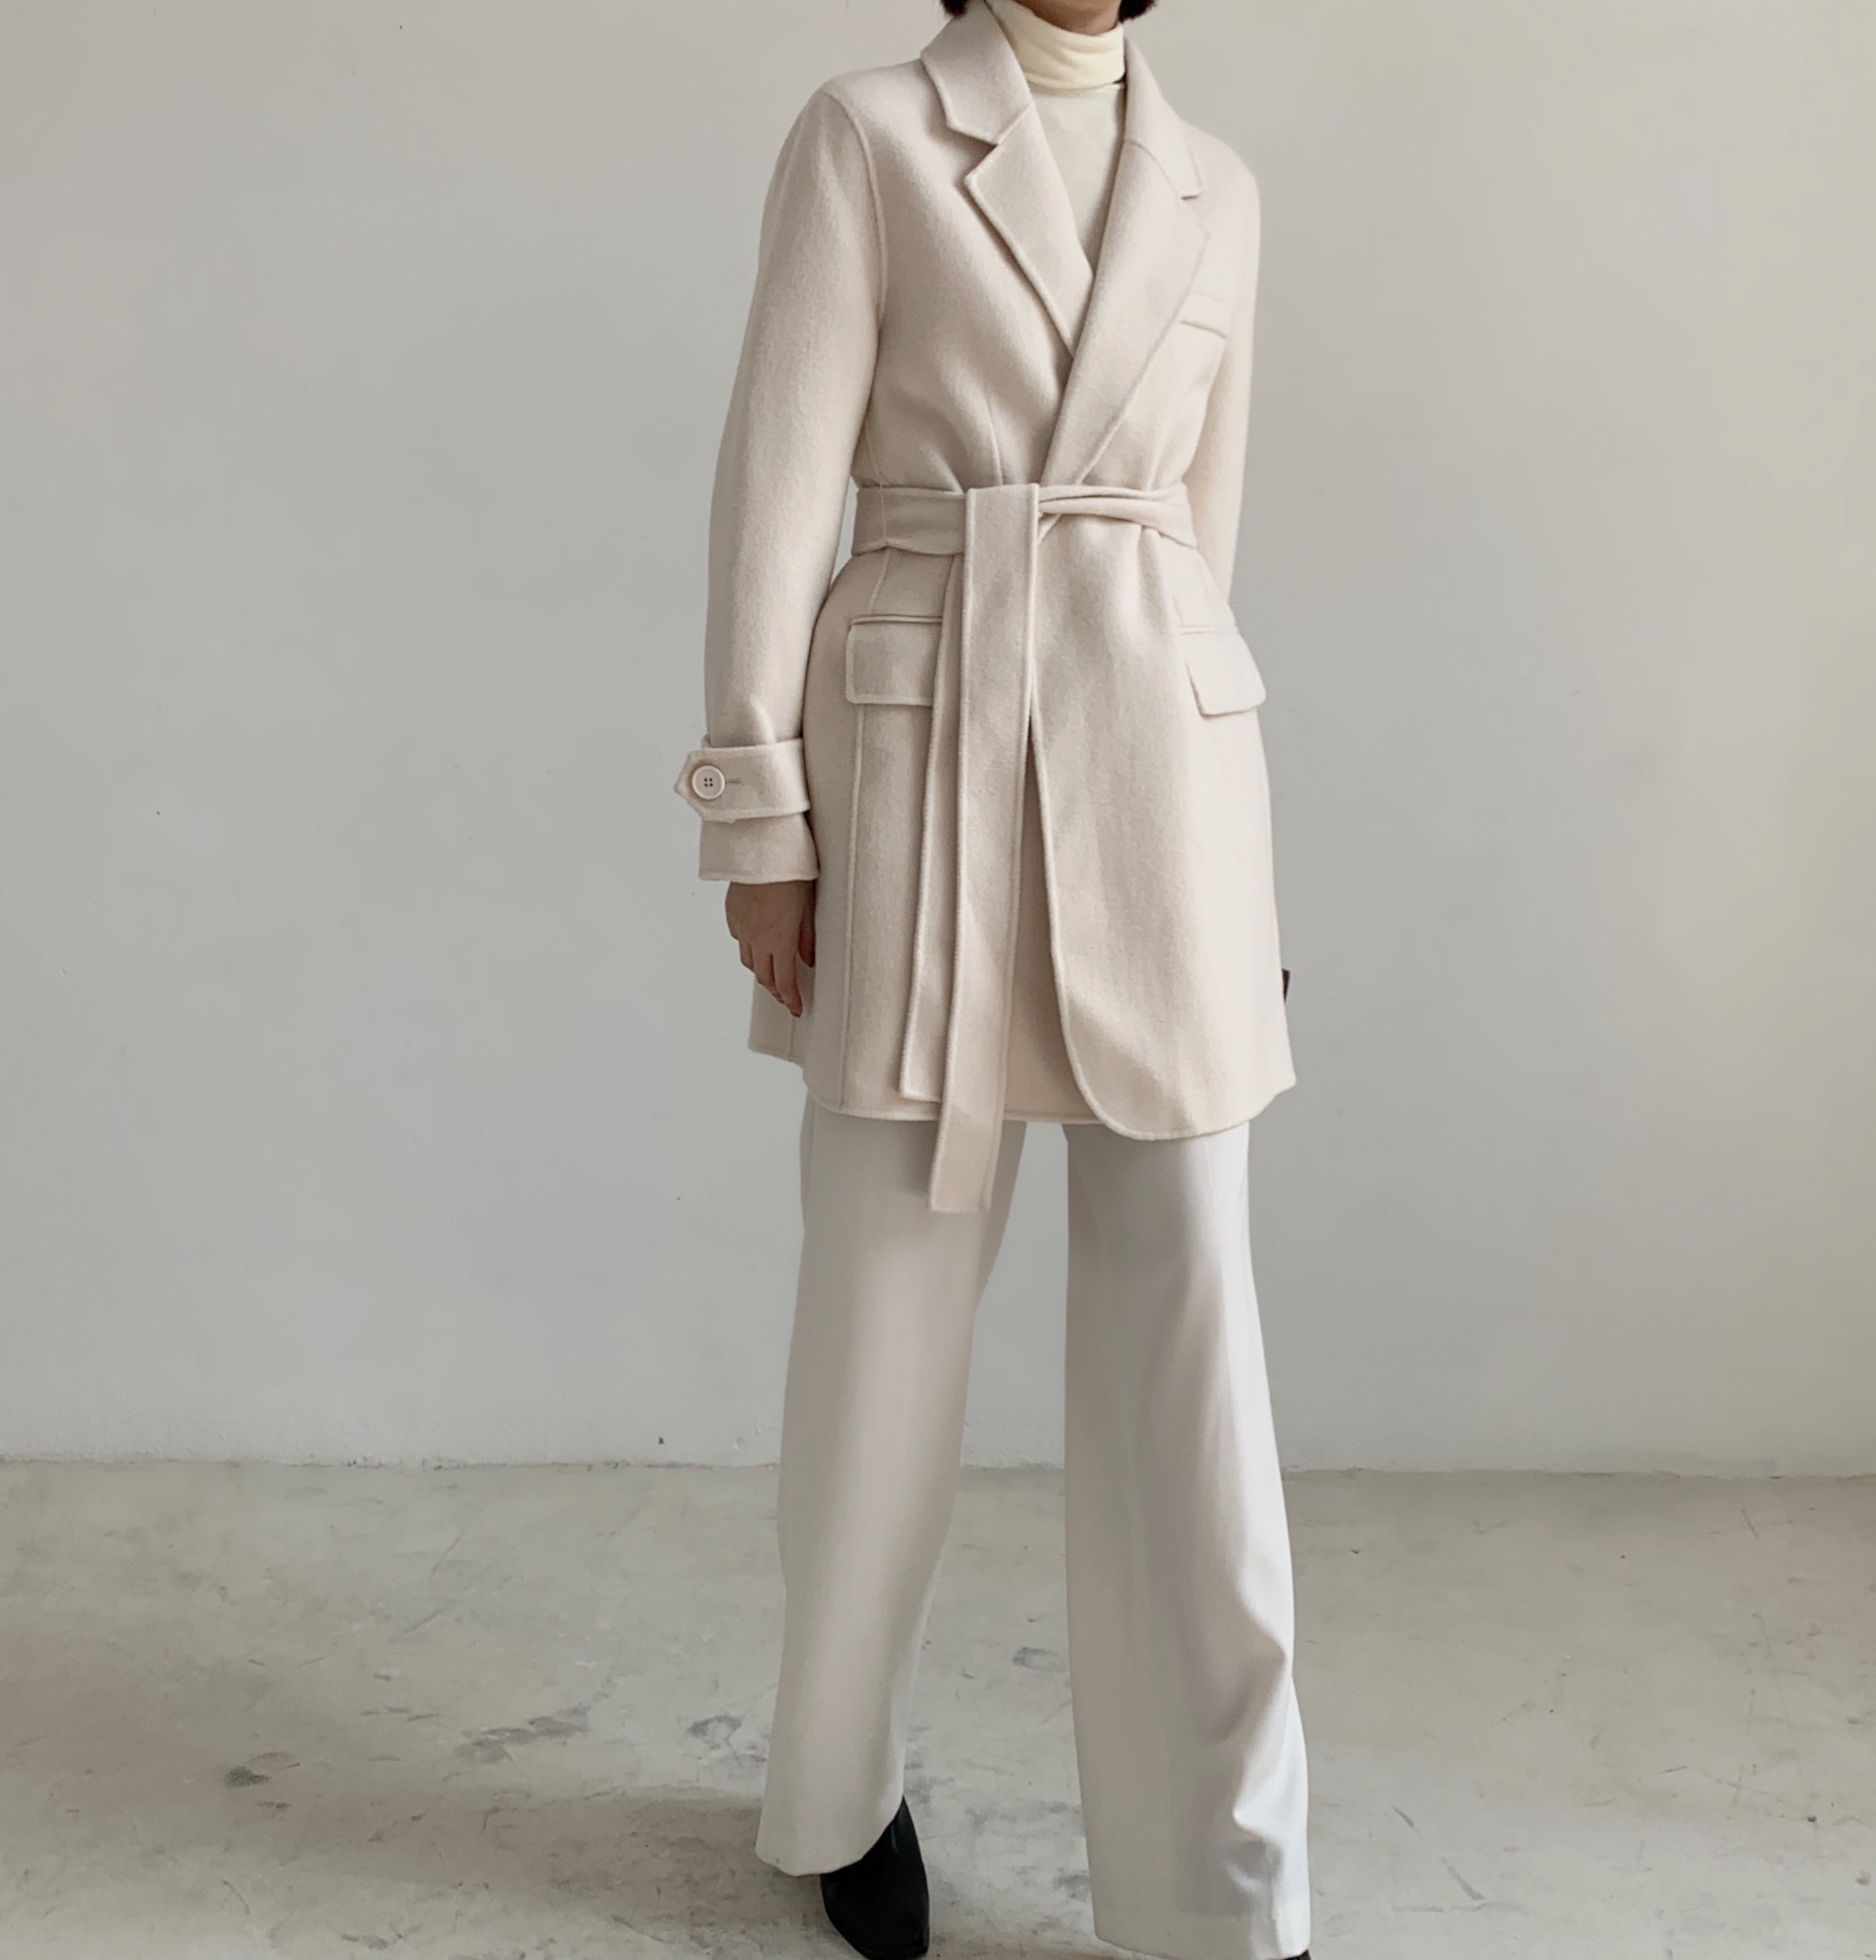 Off season special and versatile lace up cashmere jacket double side hand sewn overcoat OEM